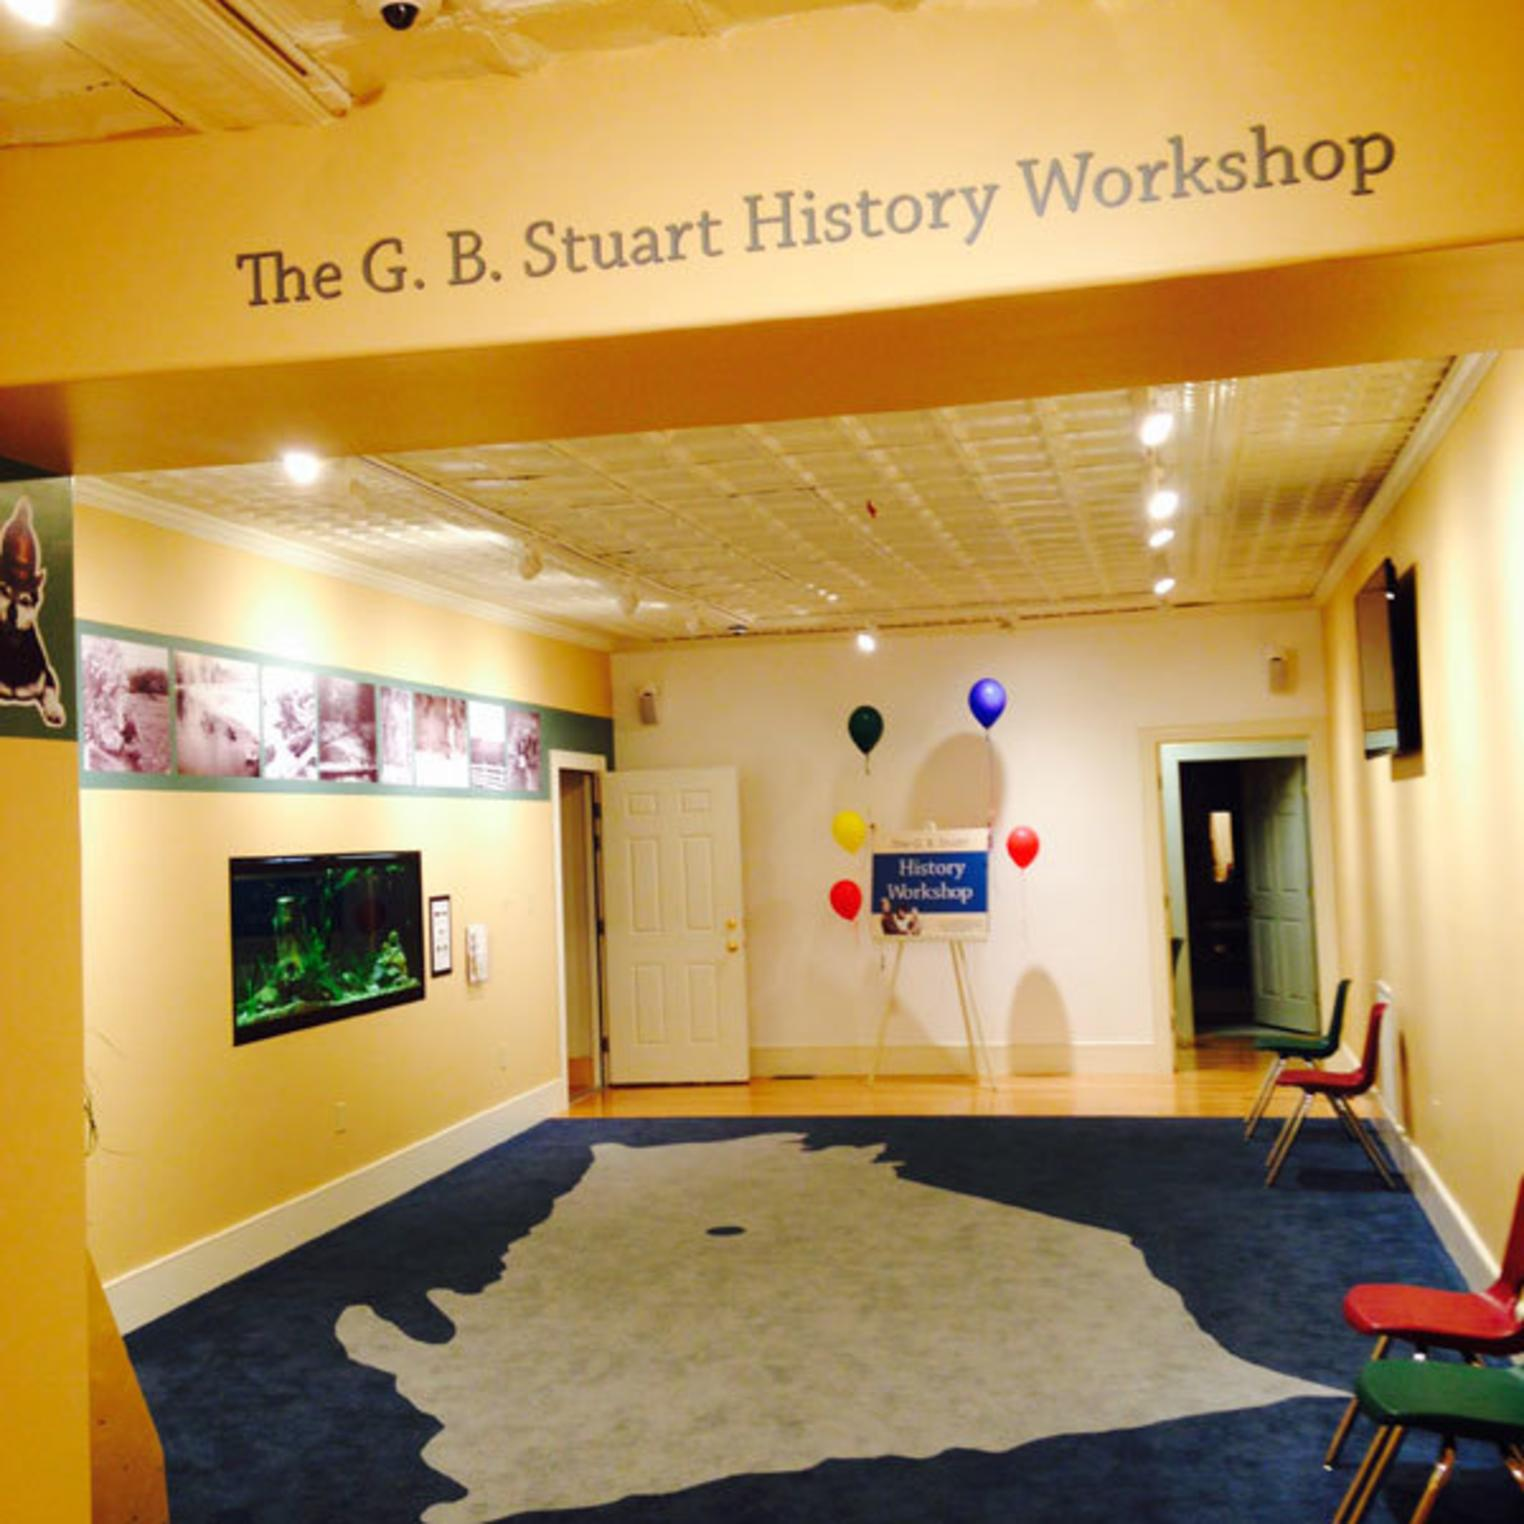 G.B. Stuart History Workshop